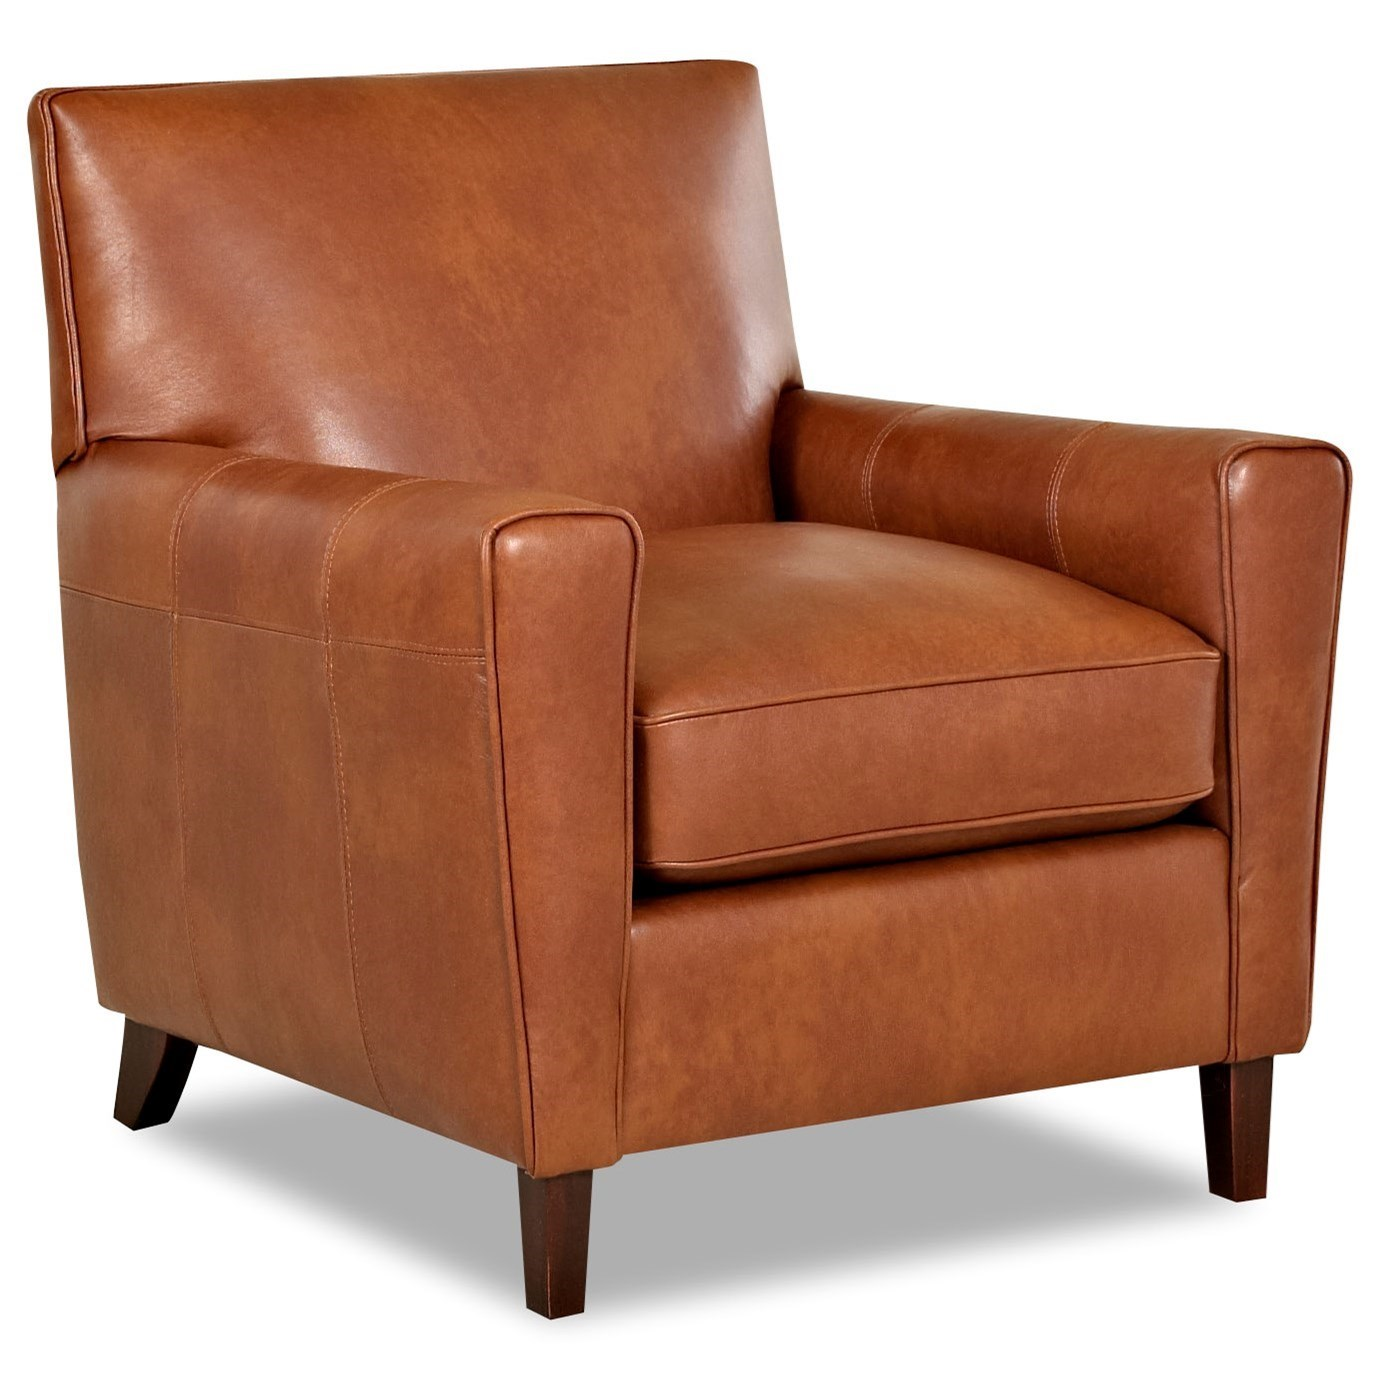 Goldie Chair by Klaussner at Northeast Factory Direct